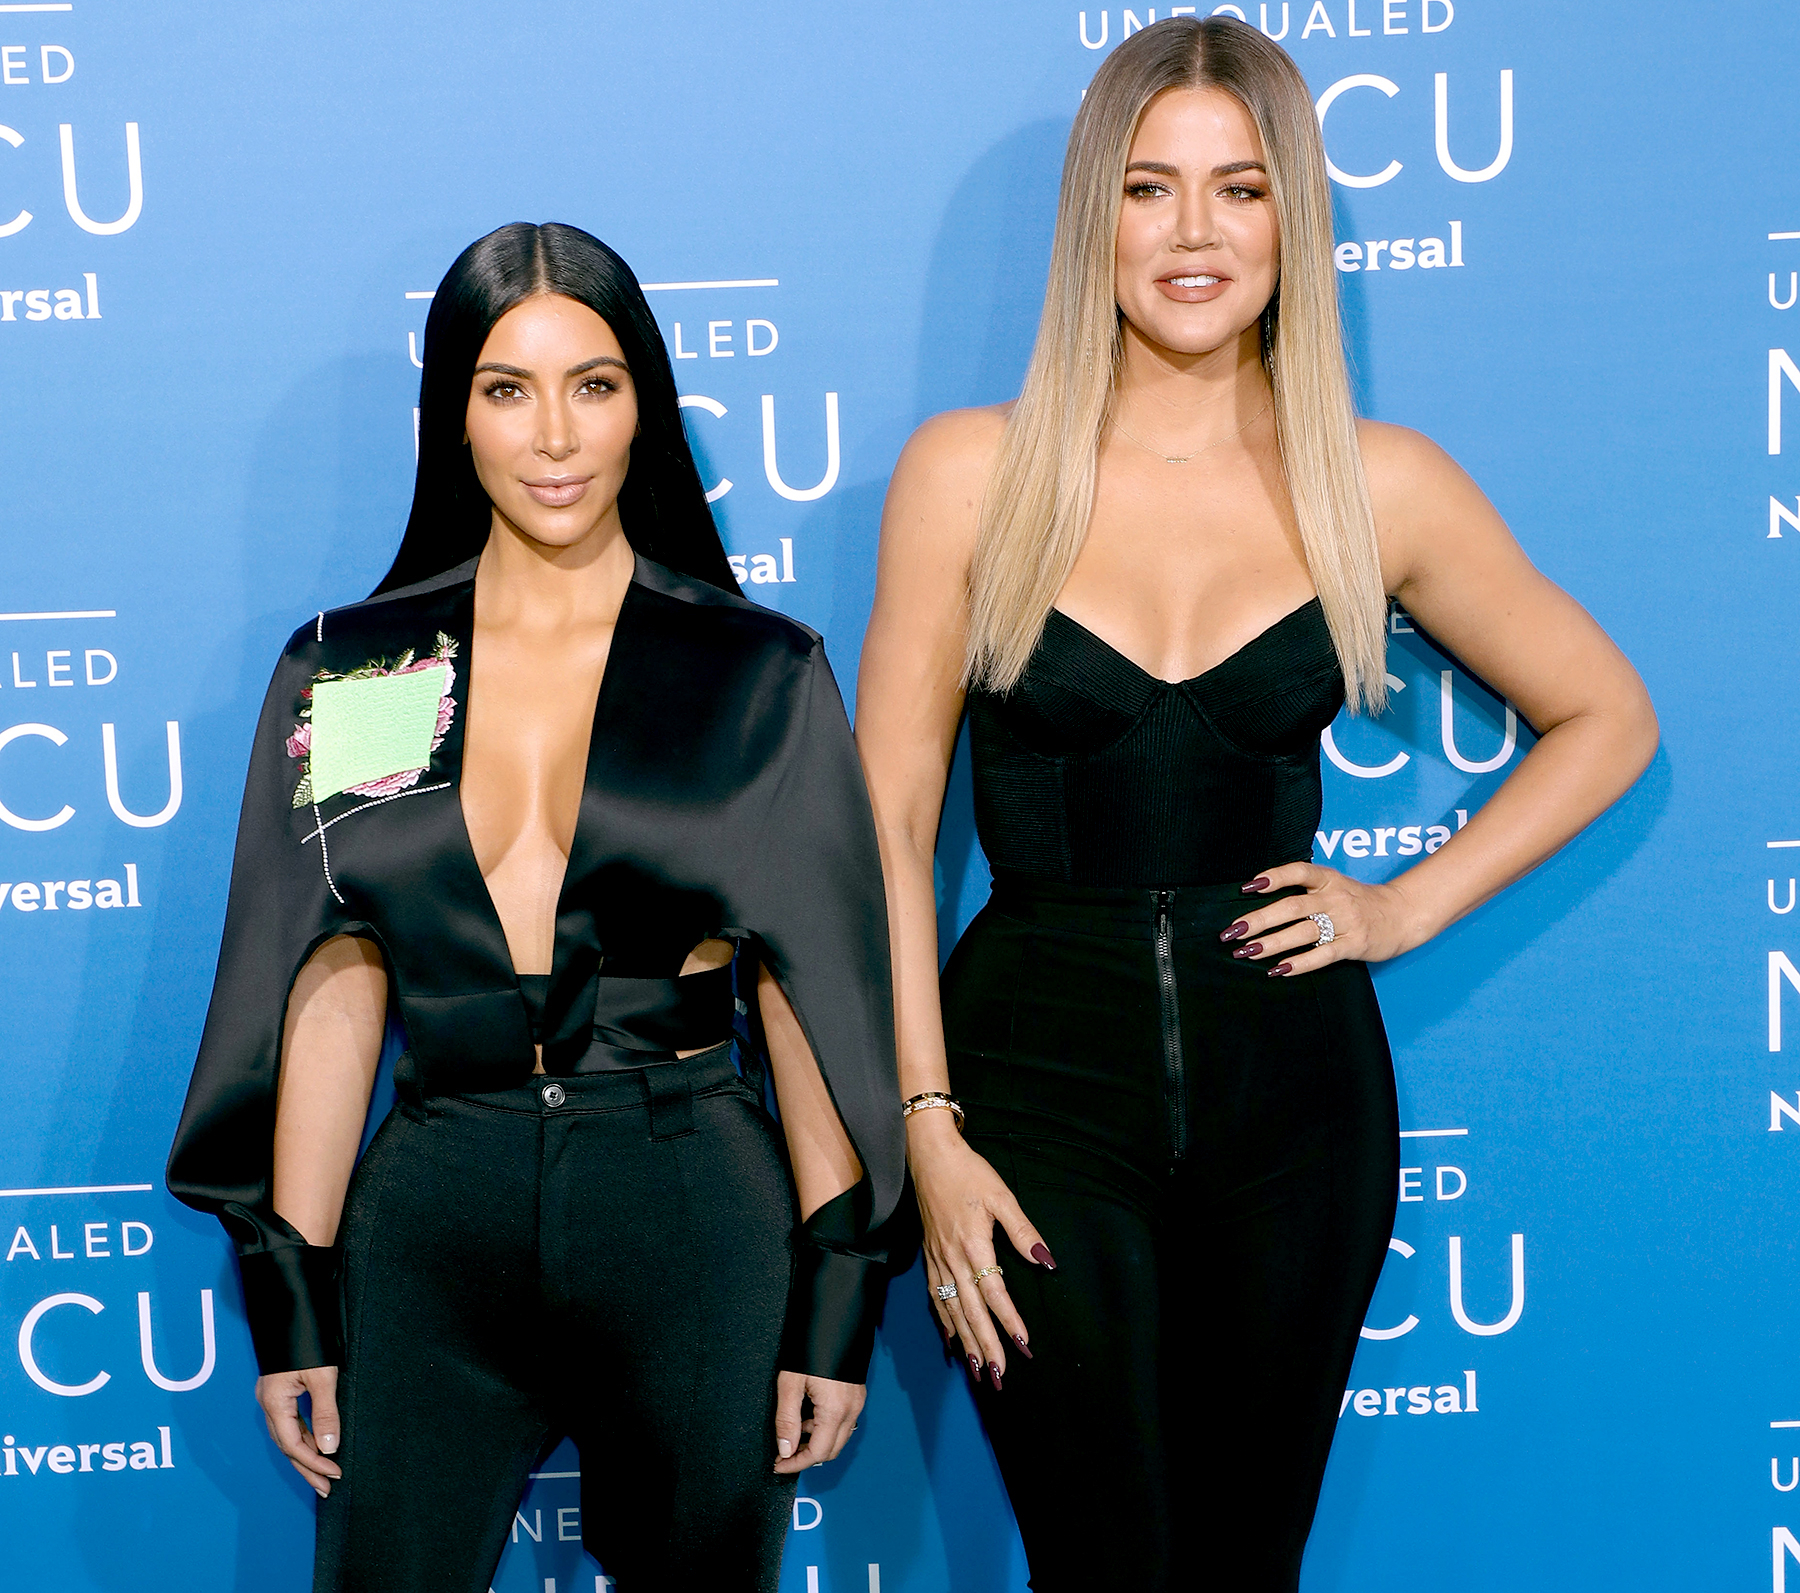 Kim Kardashian West and Khloe Kardashian attend the 2017 NBCUniversal Upfront at Radio City Music Hall on May 15, 2017 in New York City.